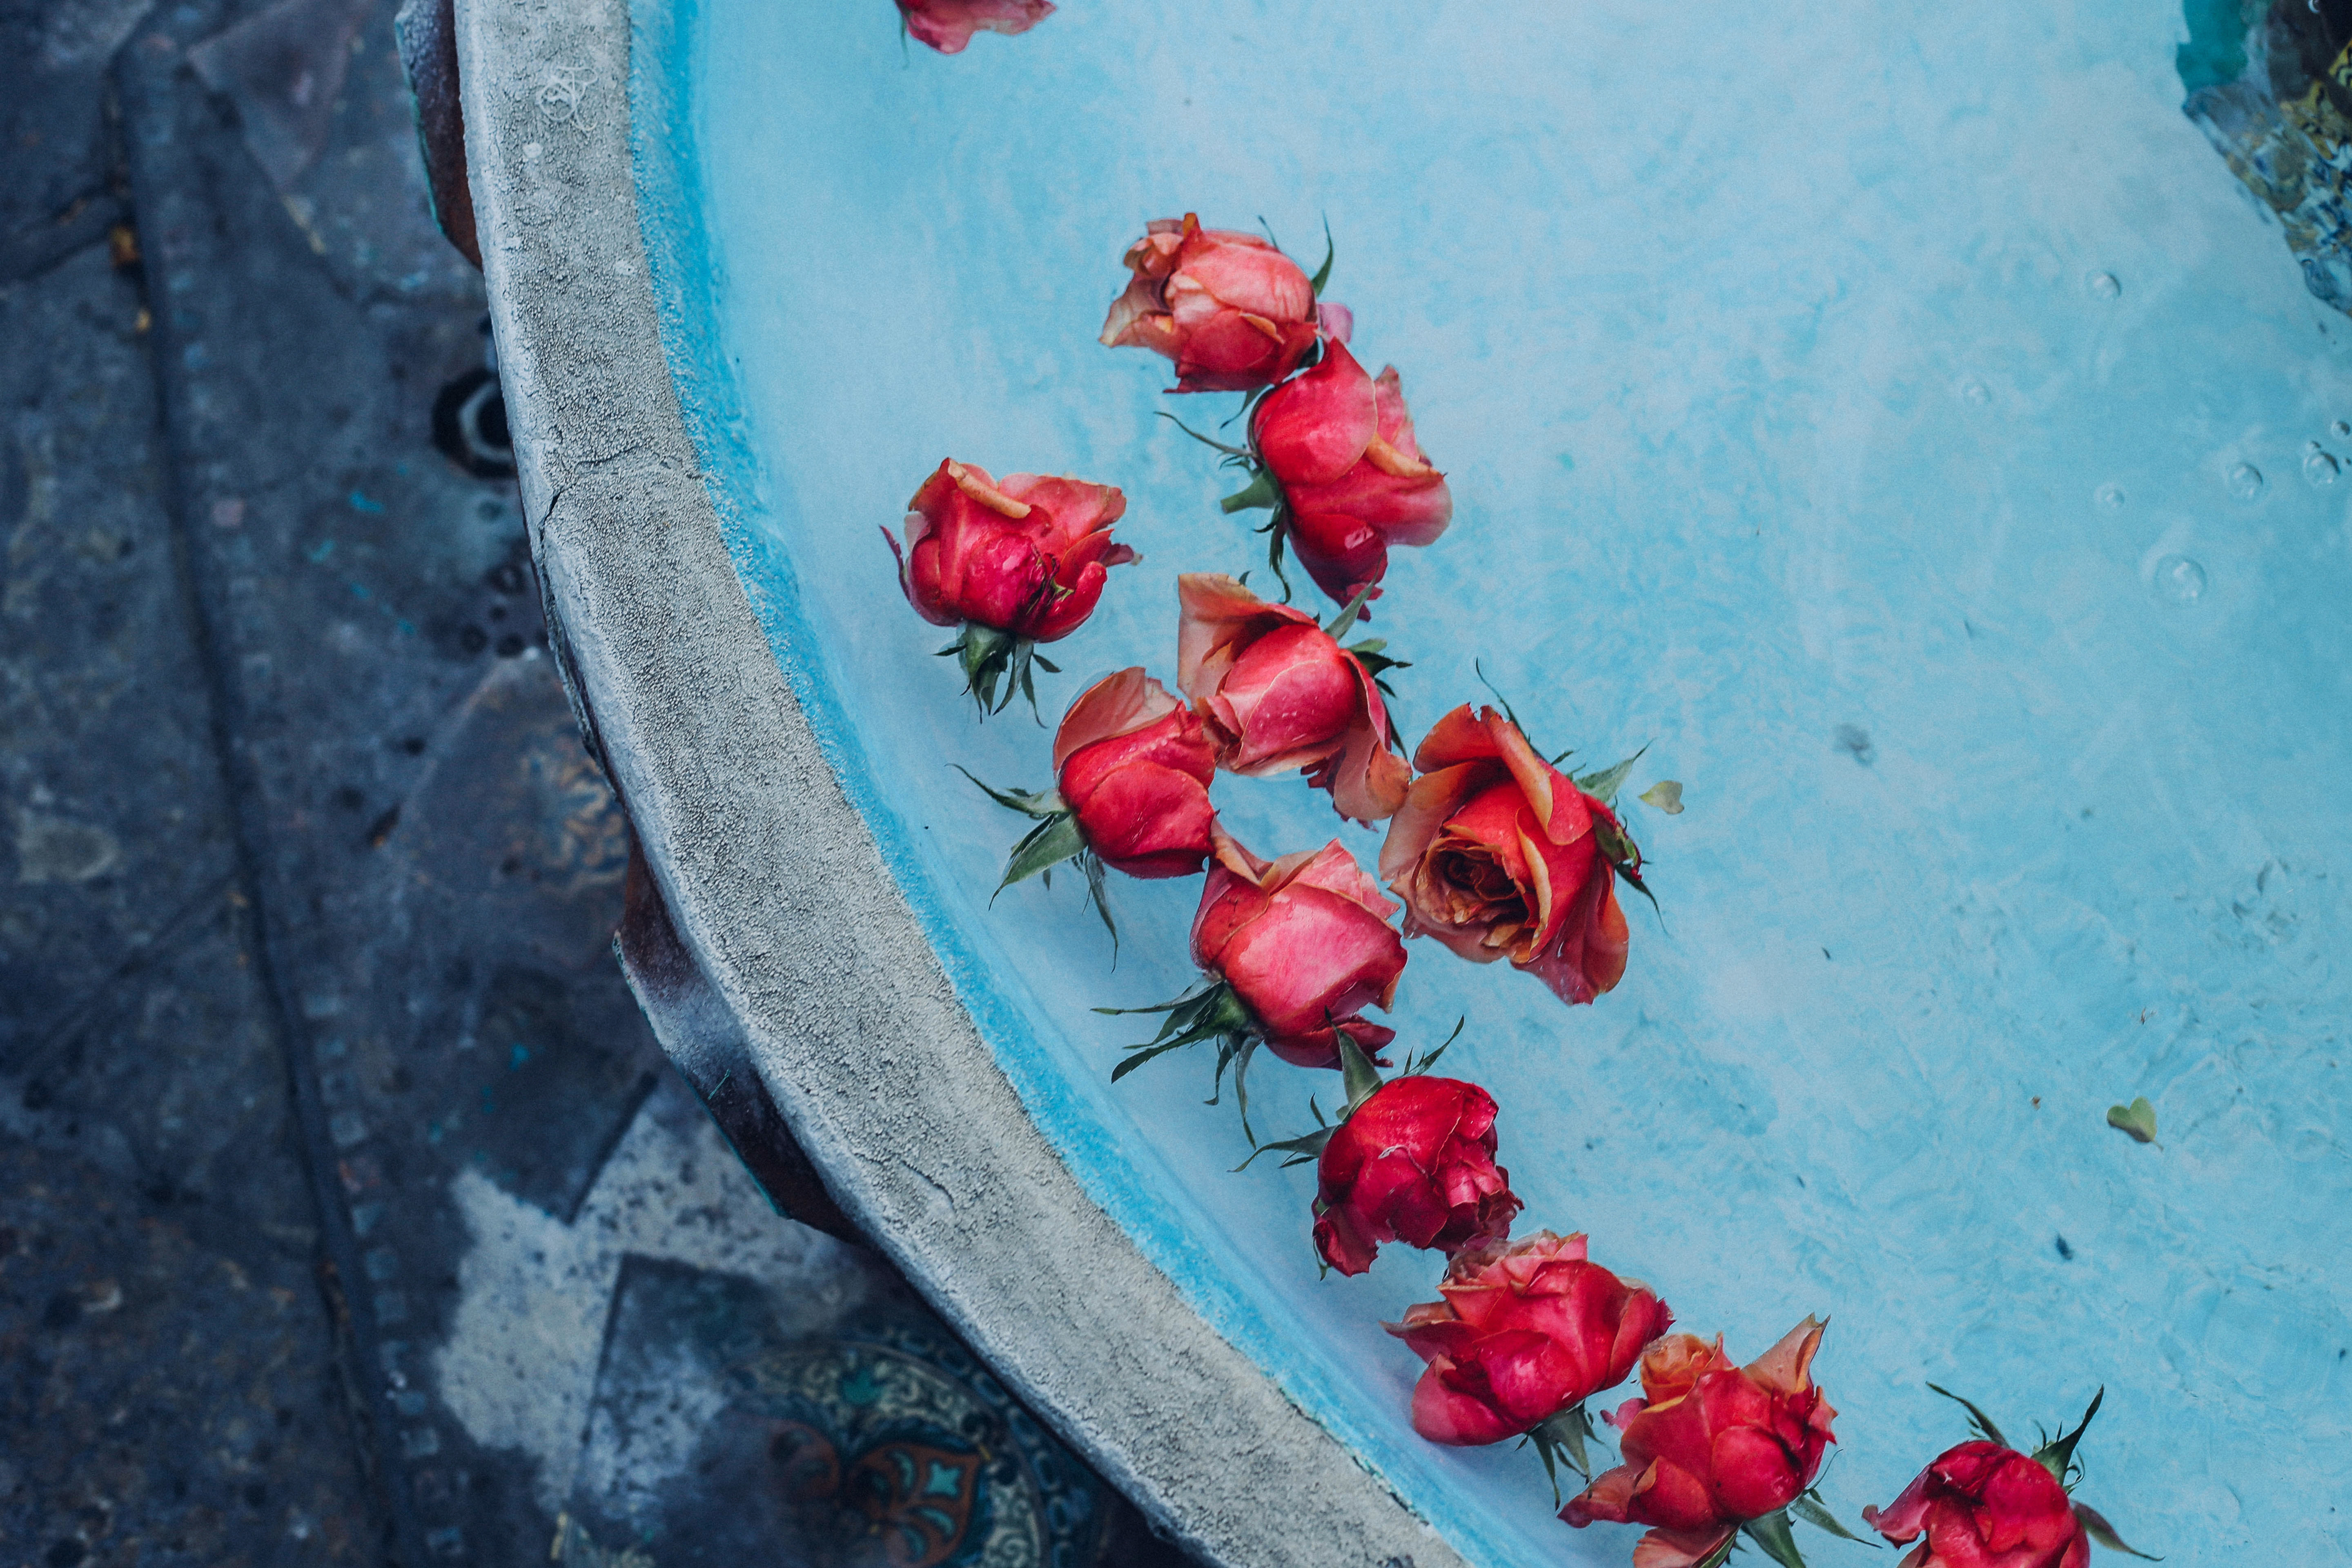 Roses in a Fountain